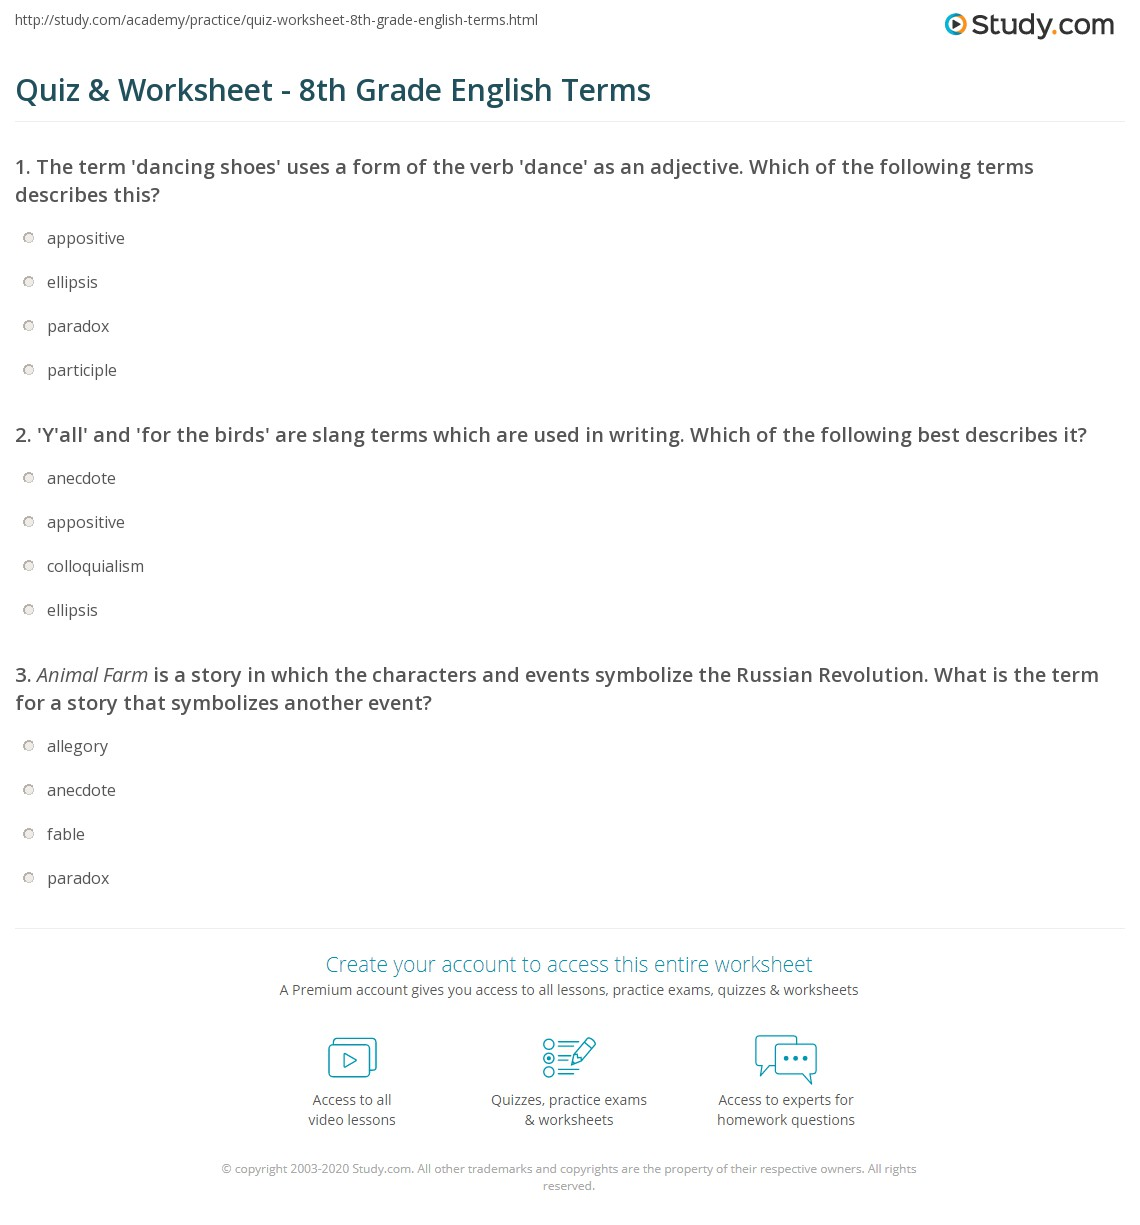 Worksheet 8th Grade History Worksheets Worksheet Fun Worksheet